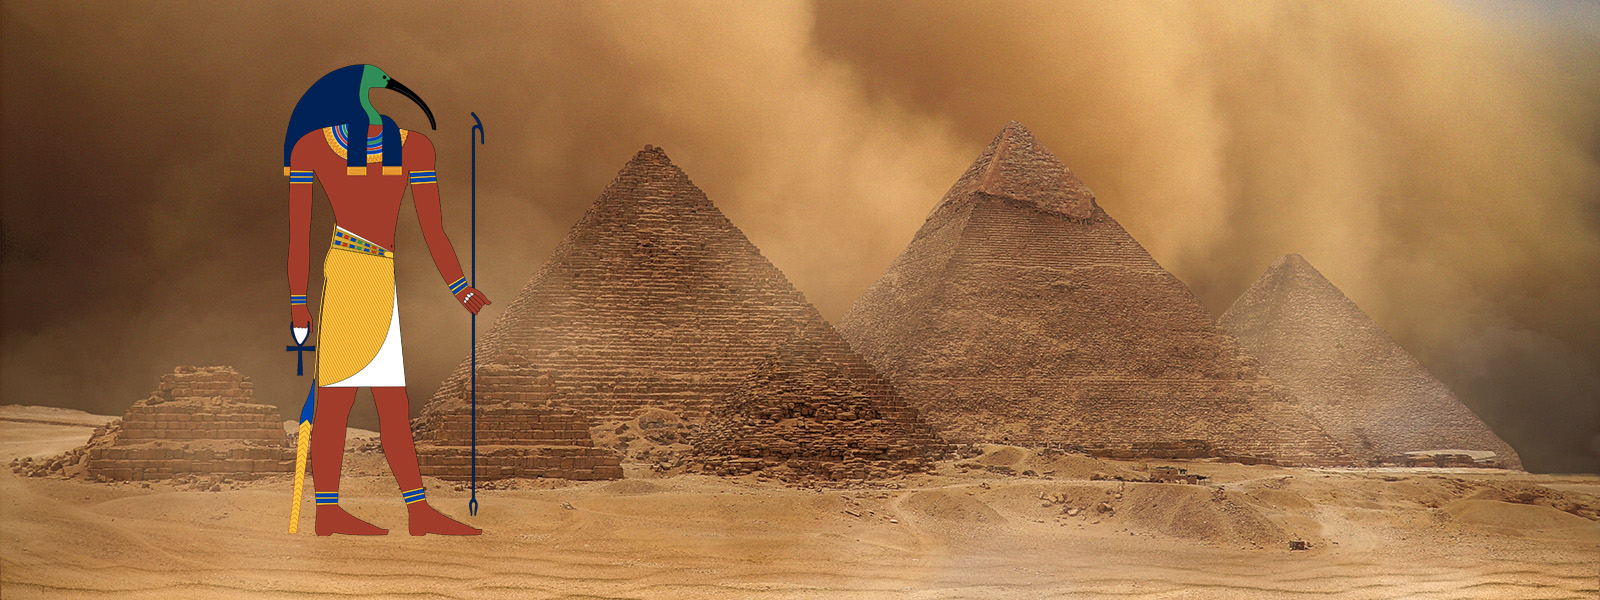 Thoth and the Pyramids in Ancient Egypt